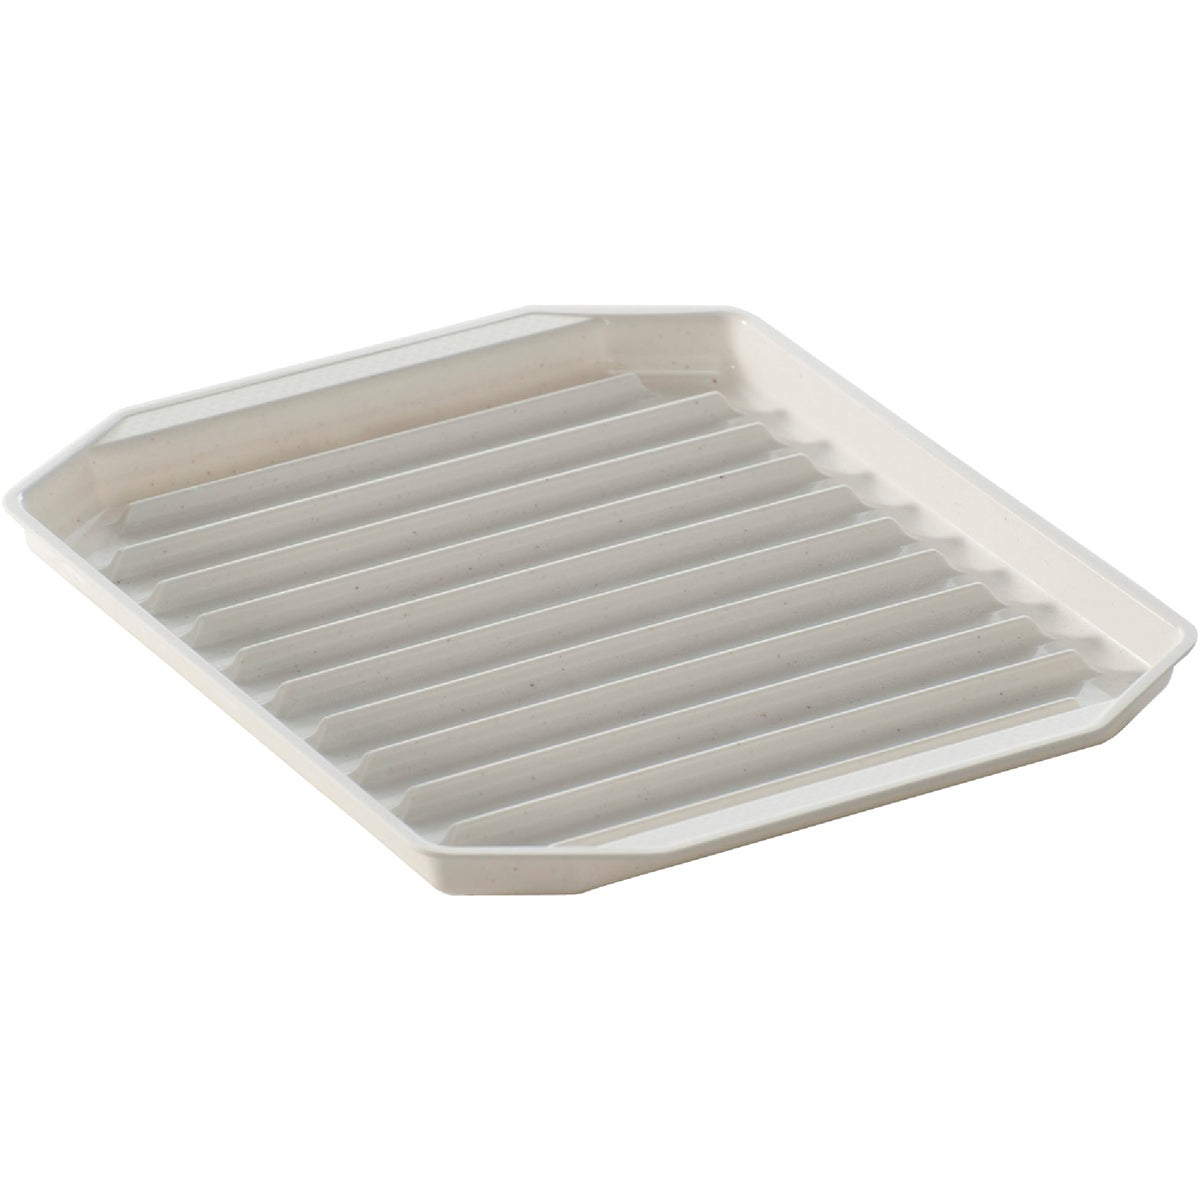 8X10 BACON RACK - 60110 by Nordic Ware/reitenba